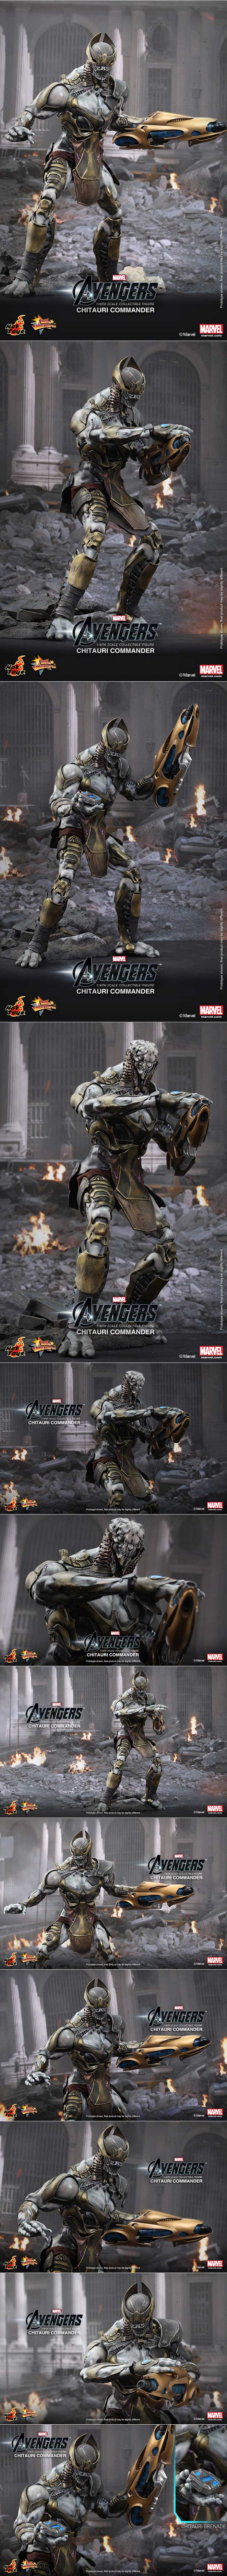 [The Avengers: 1/6th scale Chitauri Footsoldier and Chitauri Commander Collectible Figures Set]